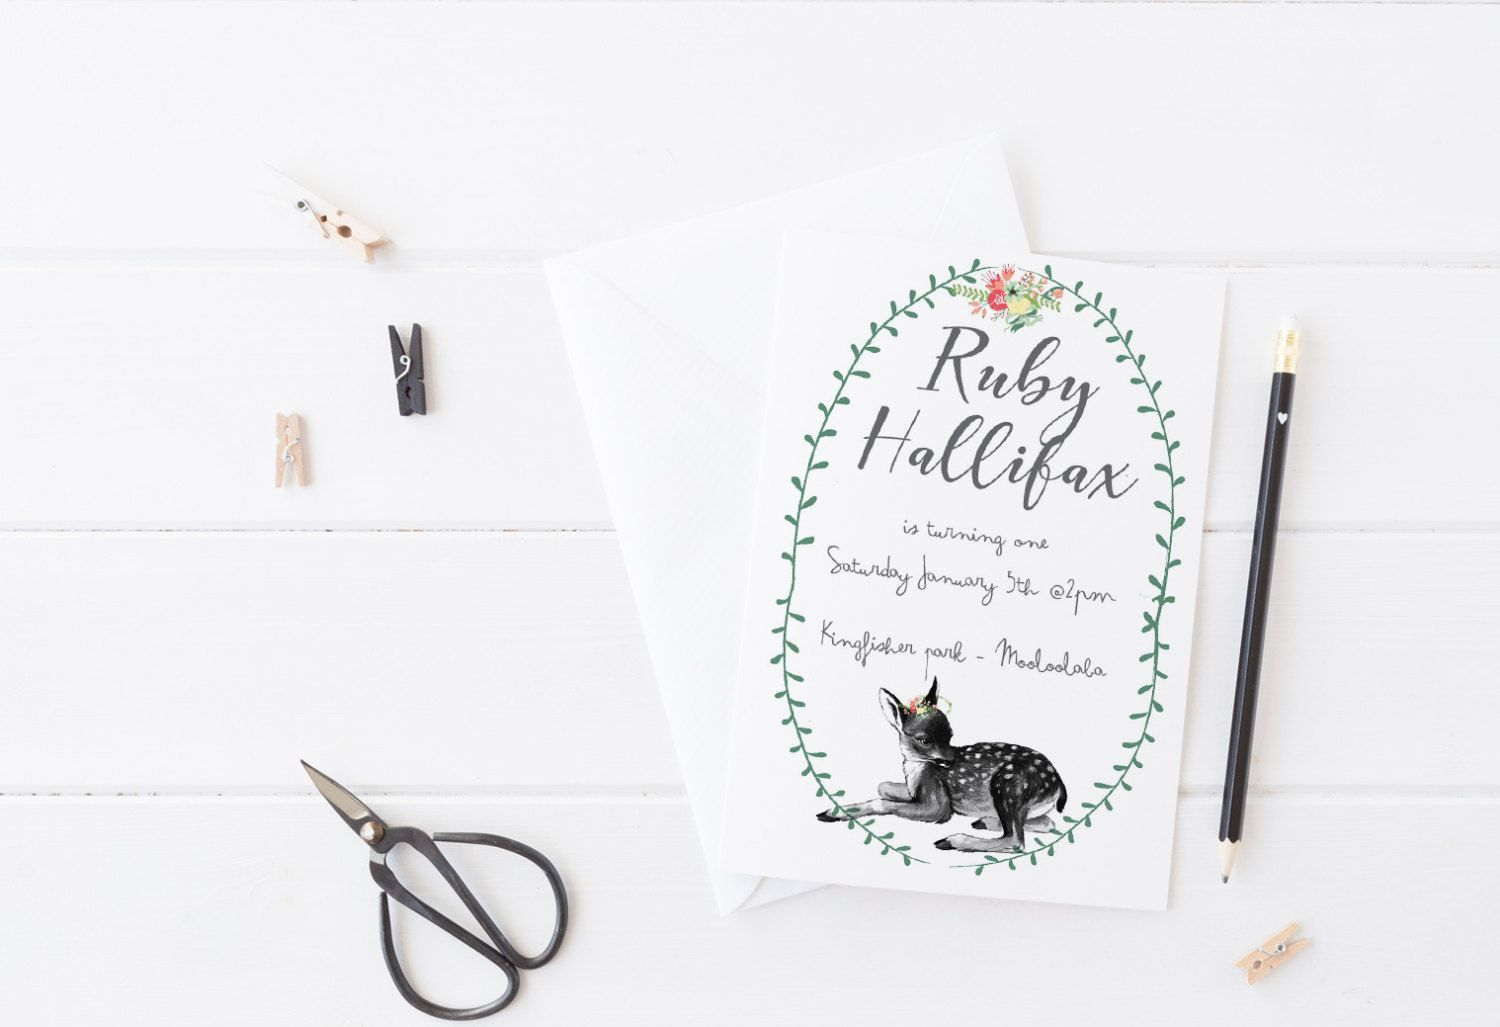 Sweet Event Invitation Featuring A Little Fawn With Floral Accents